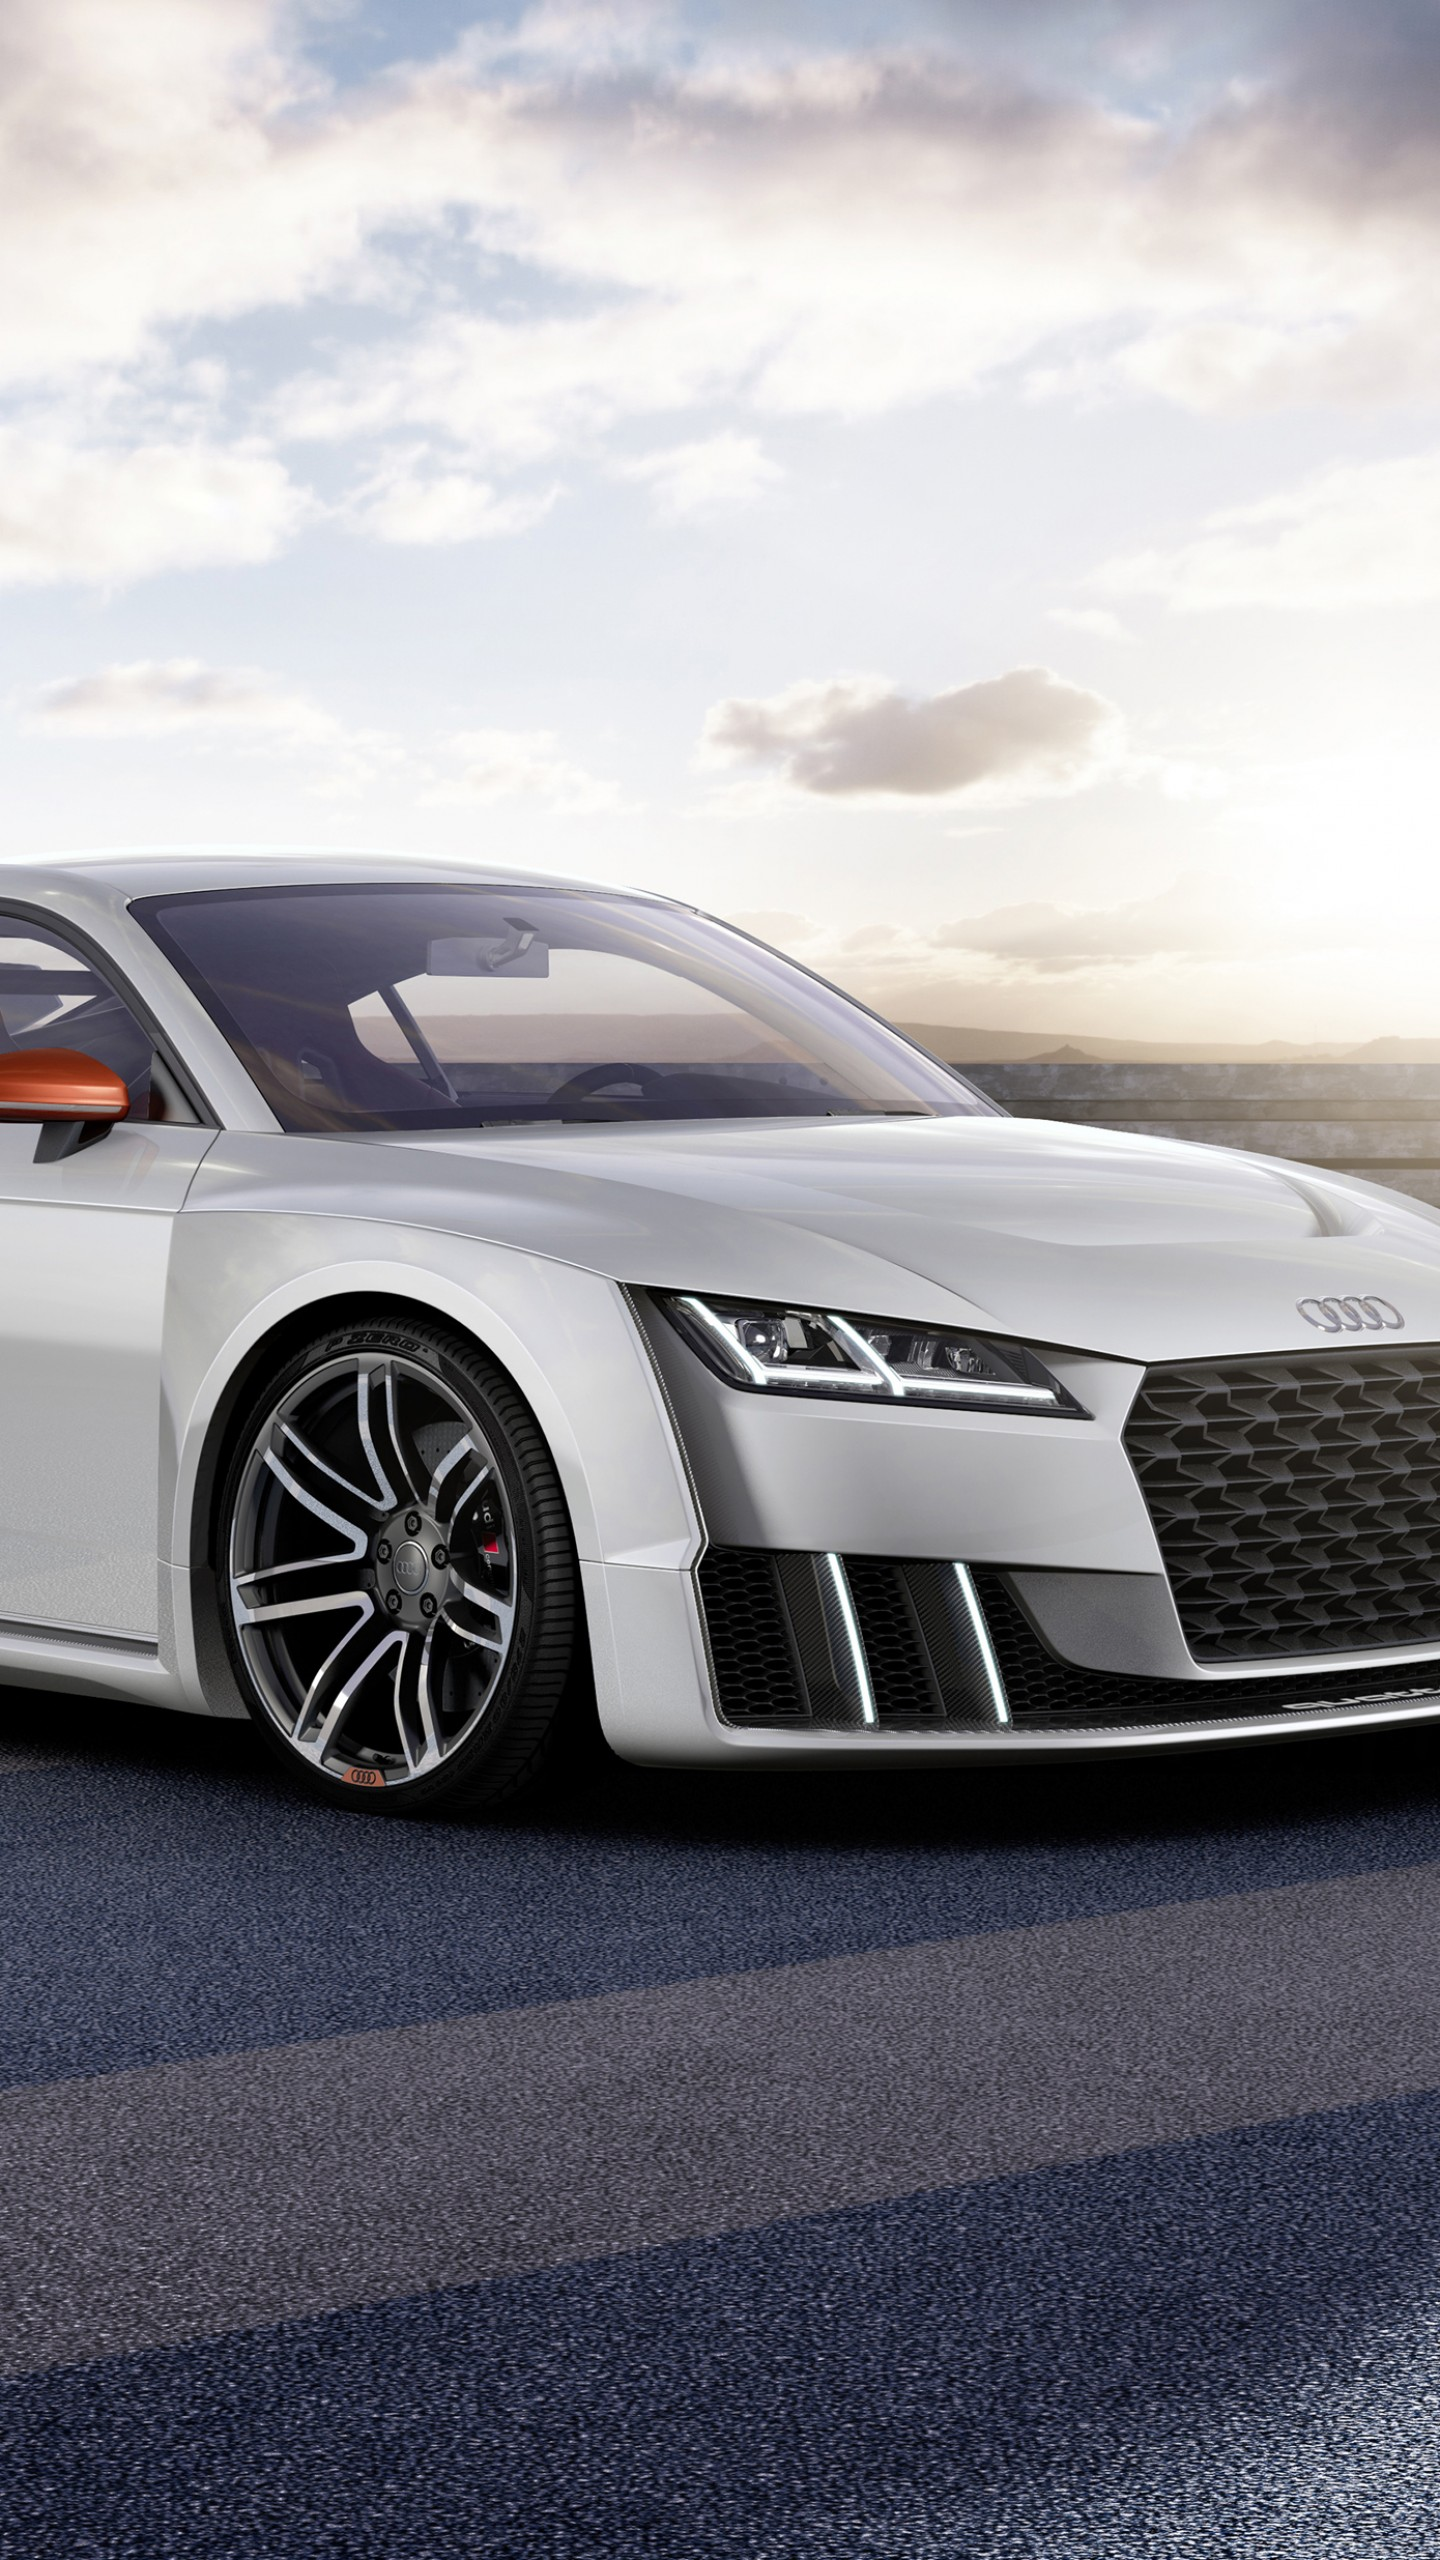 Wallpaper Audi Tt Clubsport Turbo Concept Audi Sports